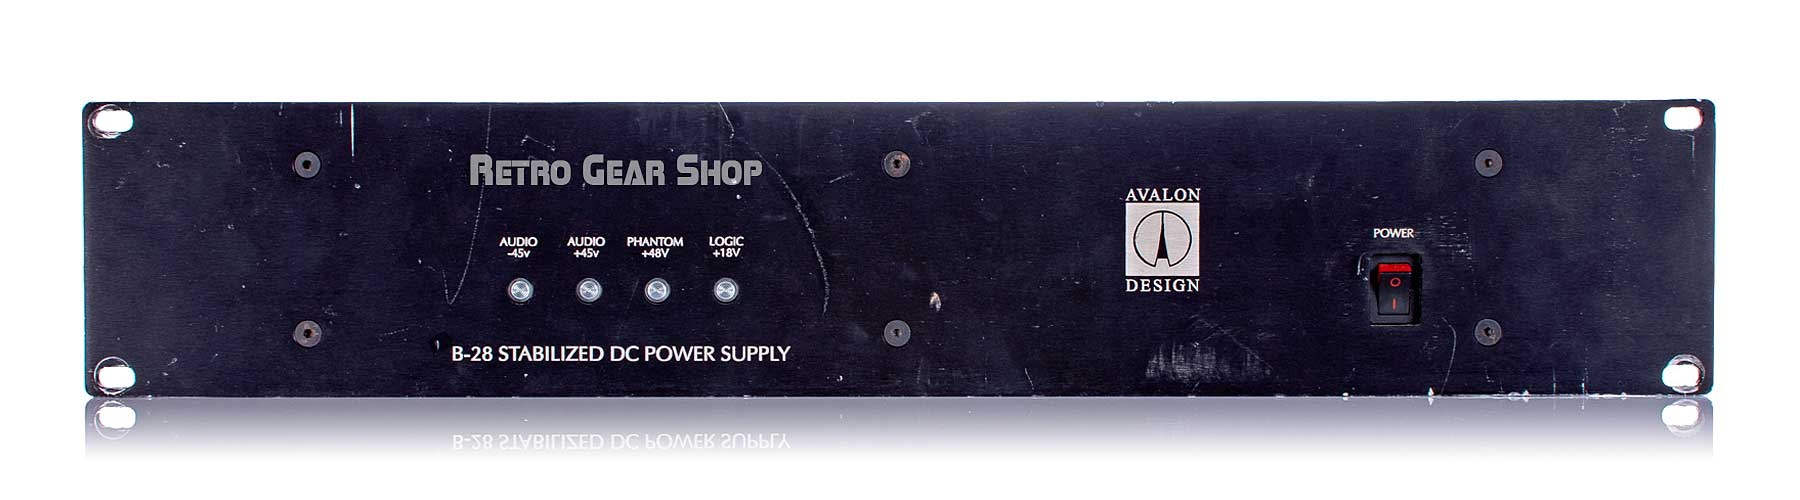 Avalon L44 Compressors Power Supply Front